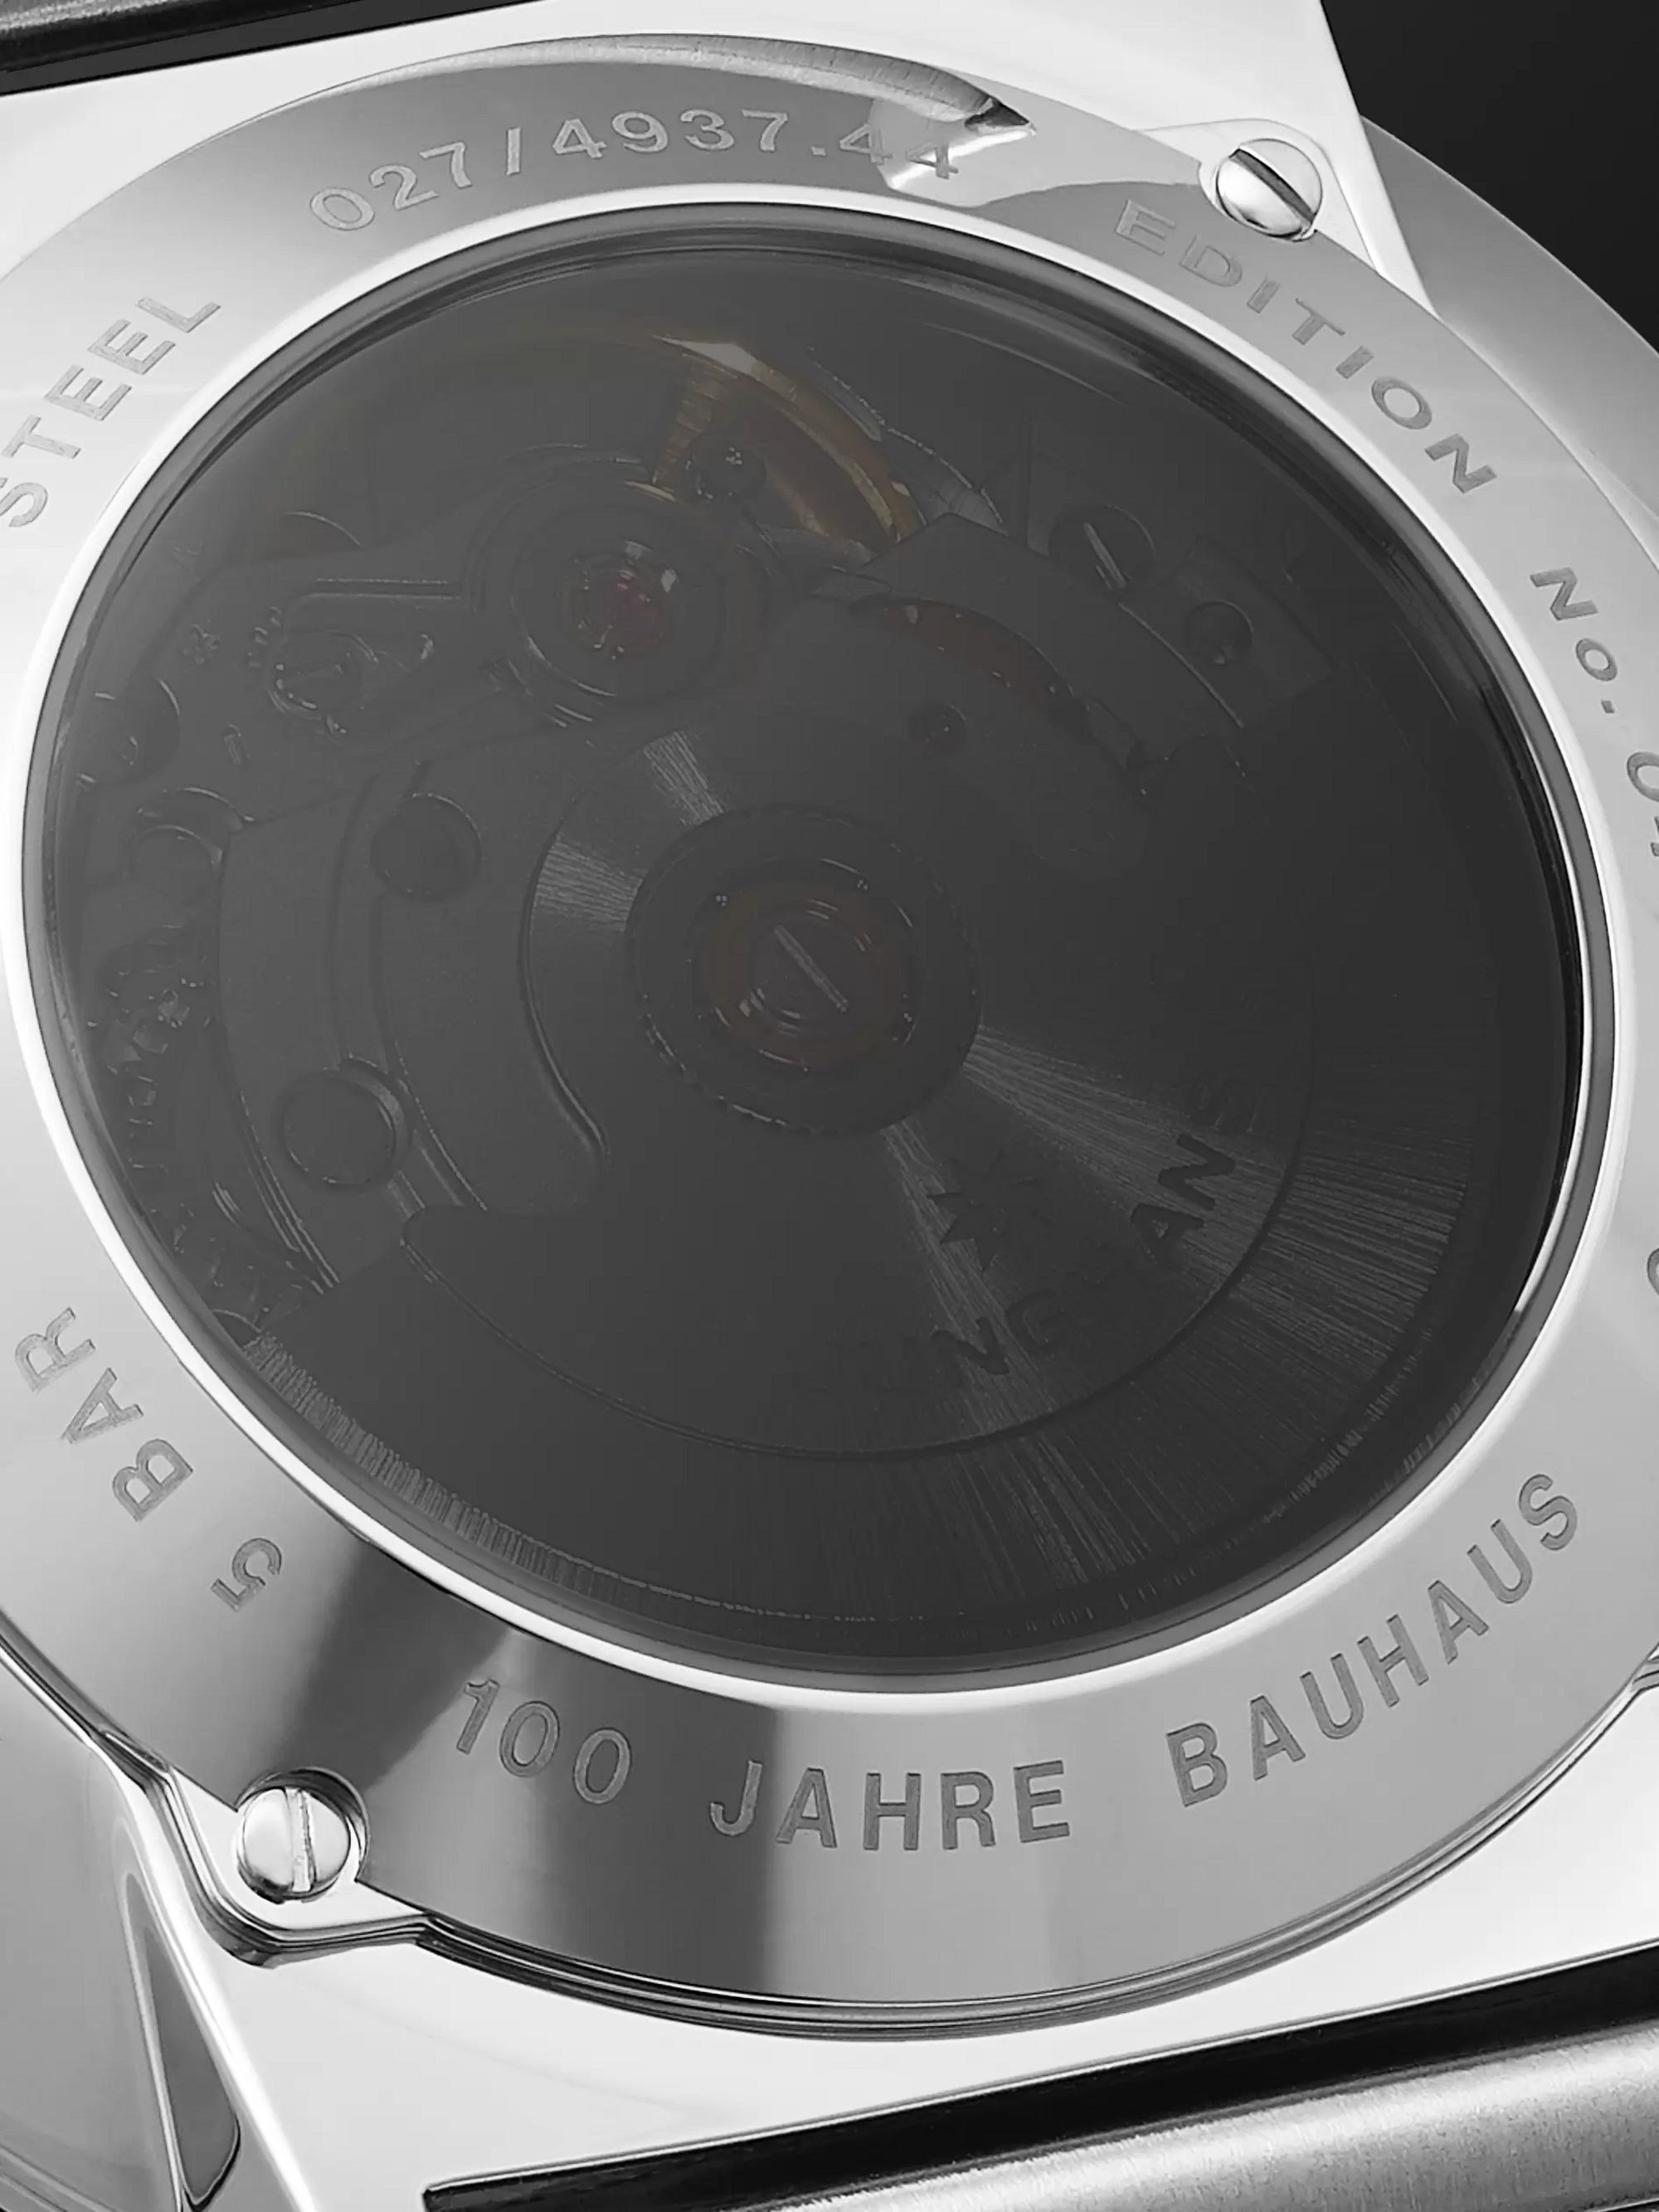 Junghans Limited Edition Form A 100 Jahre Bauhaus Automatic 39.3mm Stainless Steel Watch, Ref. No. 027/4937.44